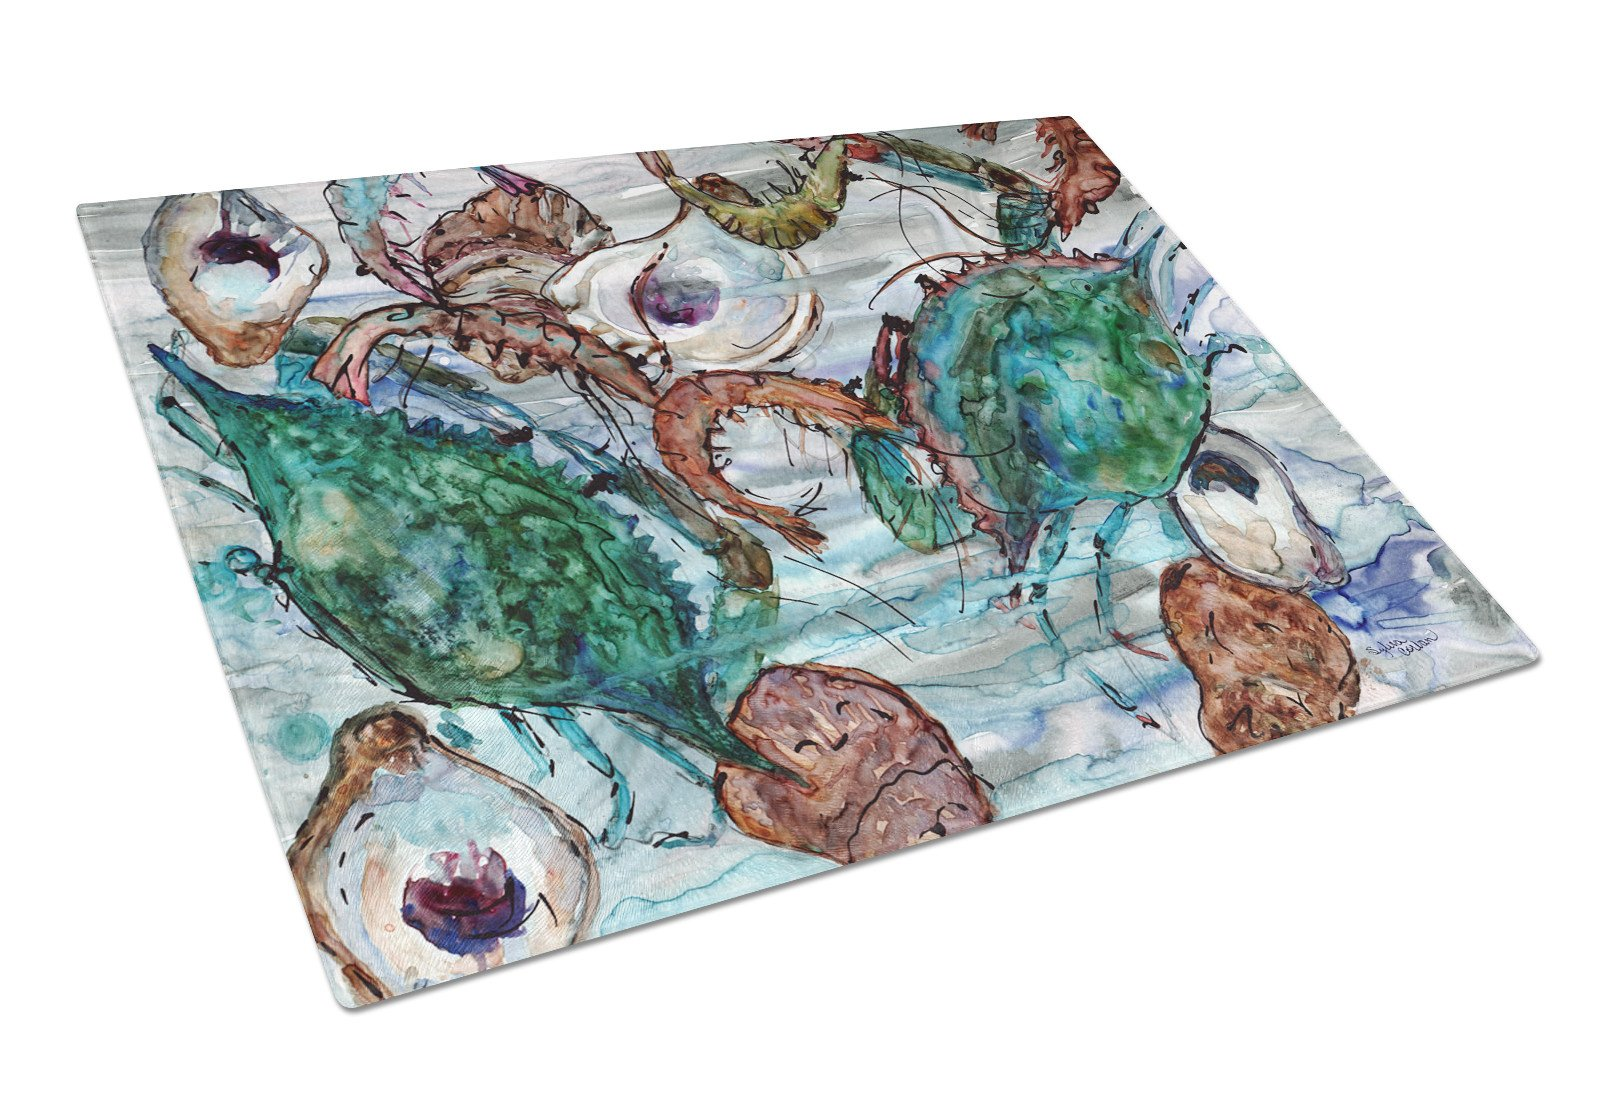 Shrimp, Crabs and Oysters in water Glass Cutting Board Large 8965LCB by Caroline's Treasures